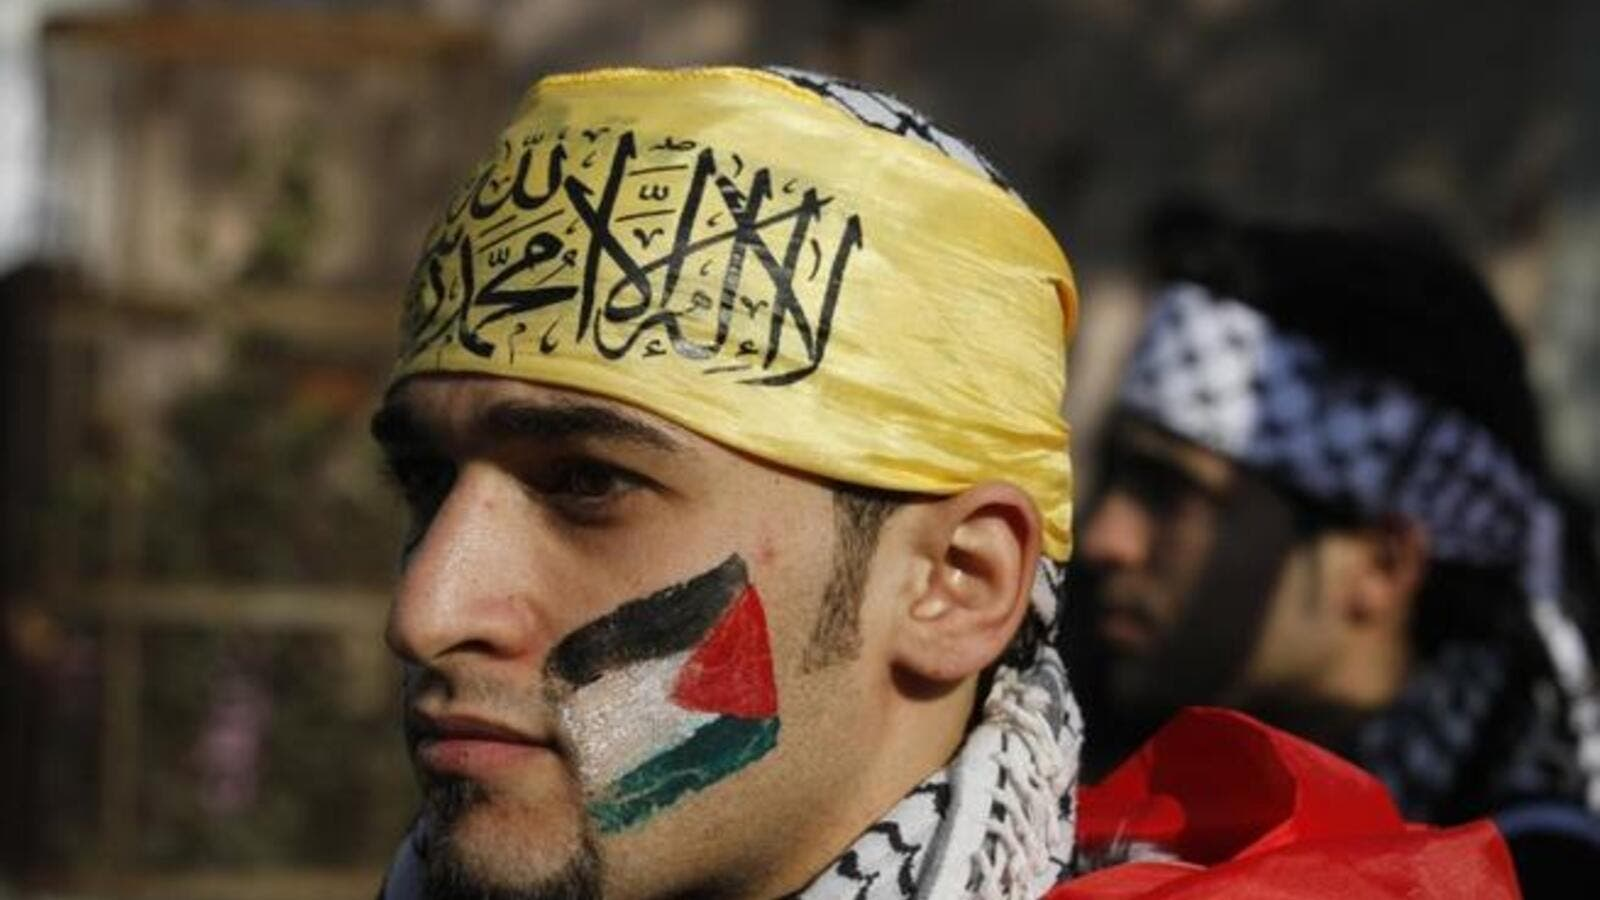 A Palestian wearing the trademark chequerred keffieyh with a national flag painted on his face, attends a rally in support of president Mahmoud Abbas's Farah party on Friday in Gaza City. (AFP PHOTO / MOHAMMED ABED)